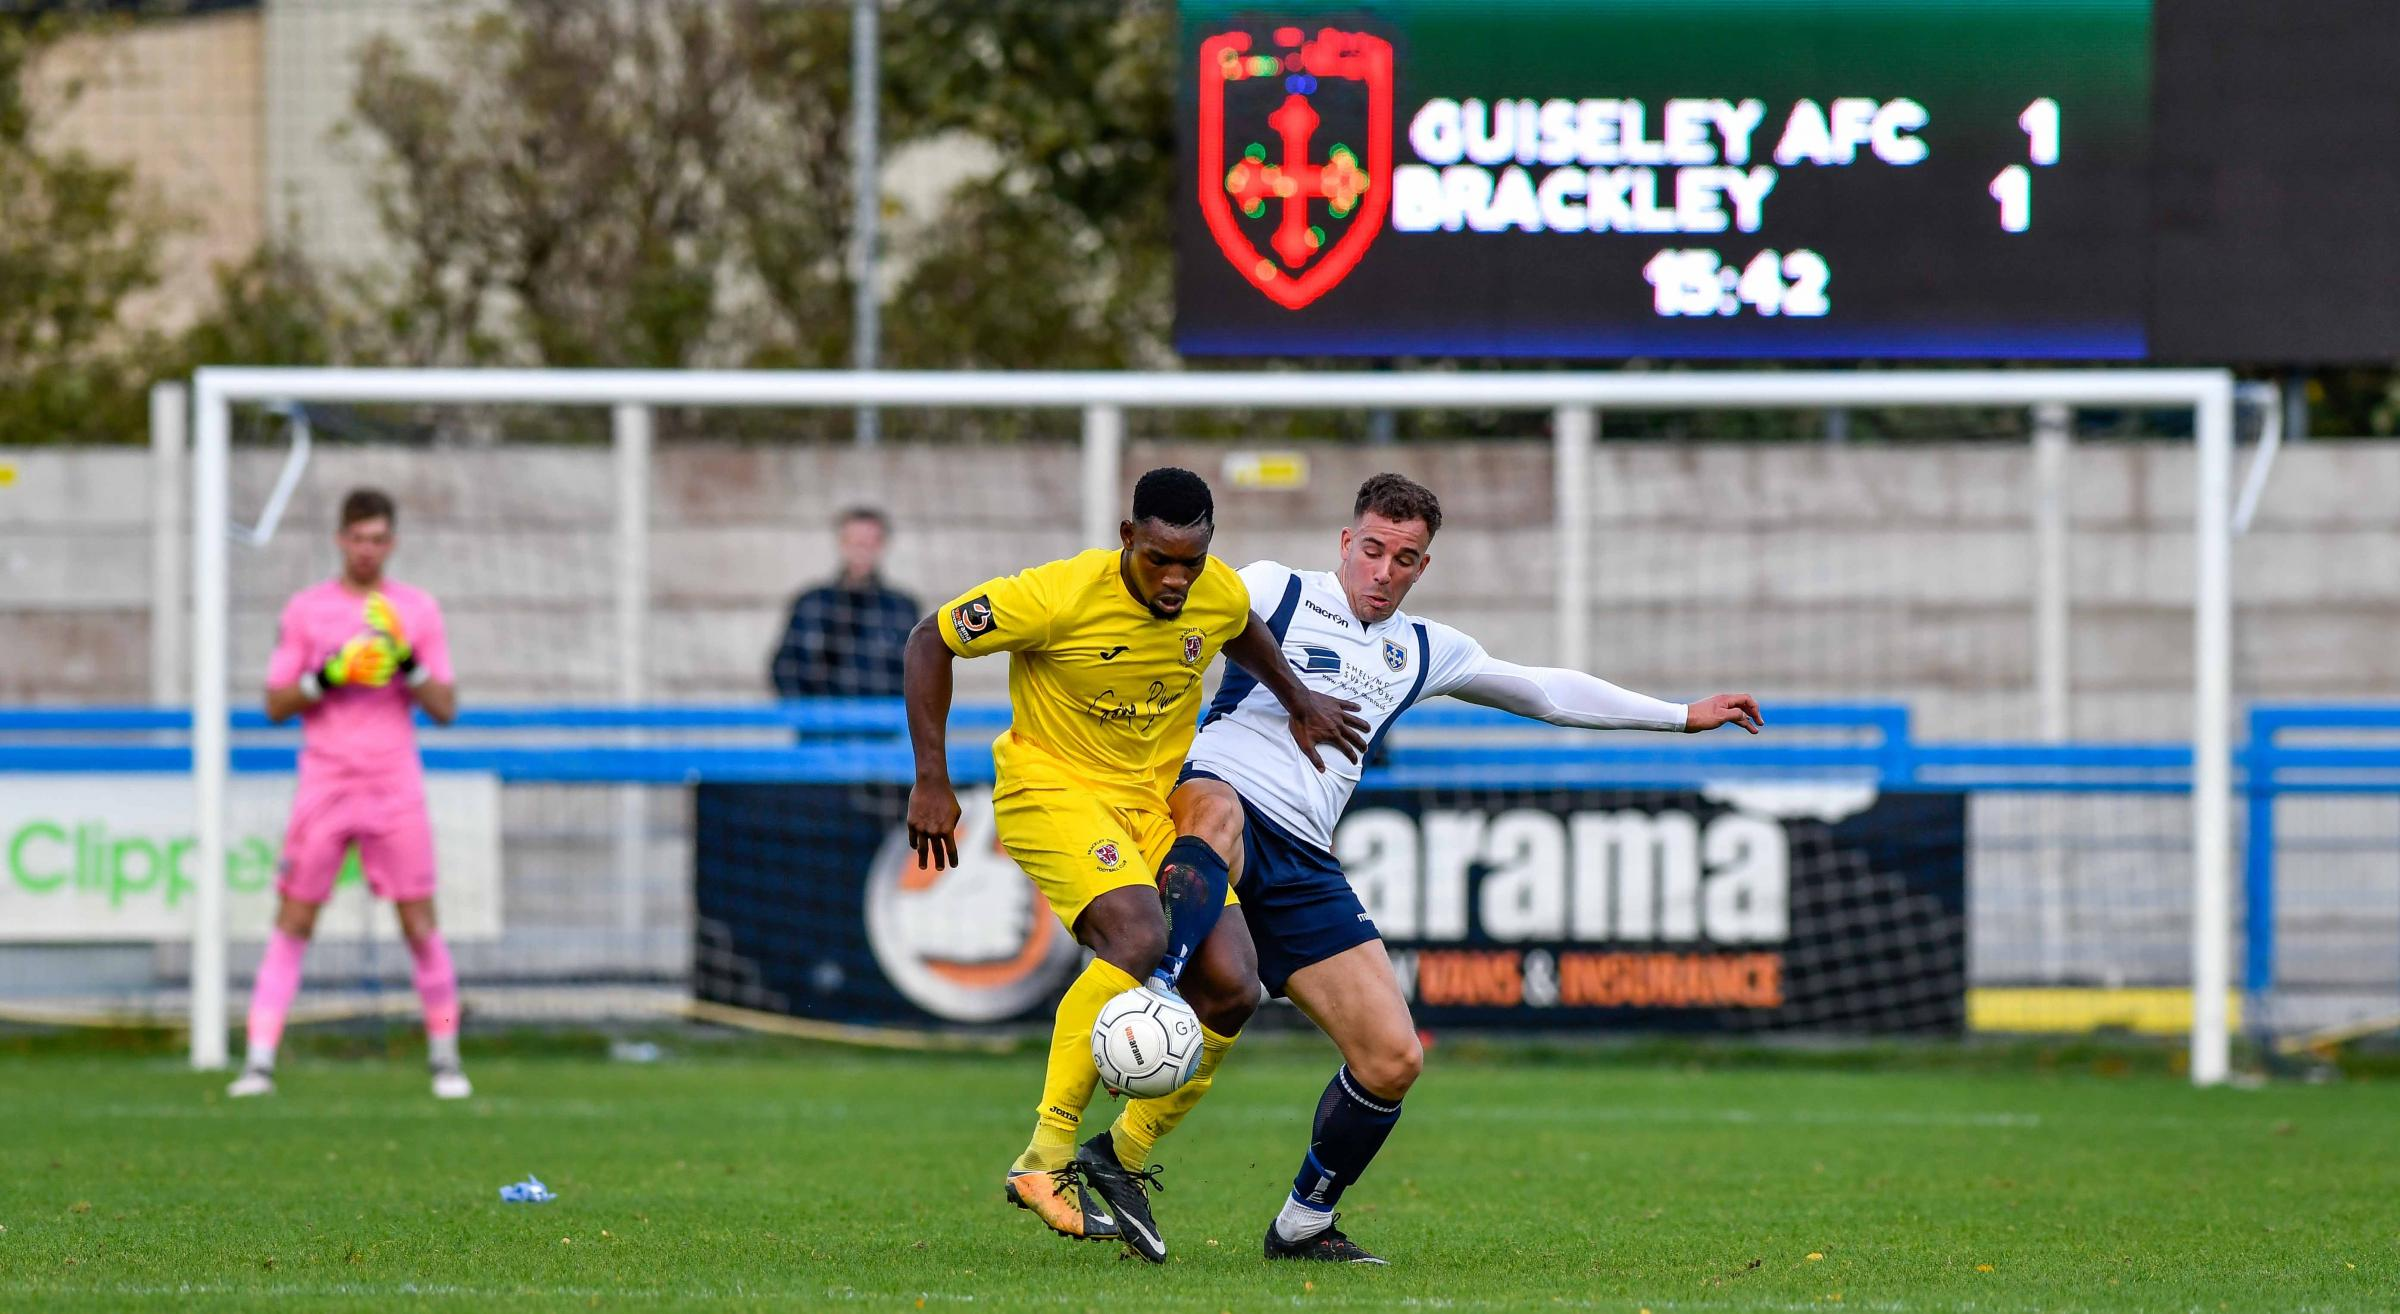 Guiseley V Brackley Niall Heaton & Lee Ndlovu. Action from Guiseley's 2-1 win over Brackley Town. Picture: Andy Garbutt